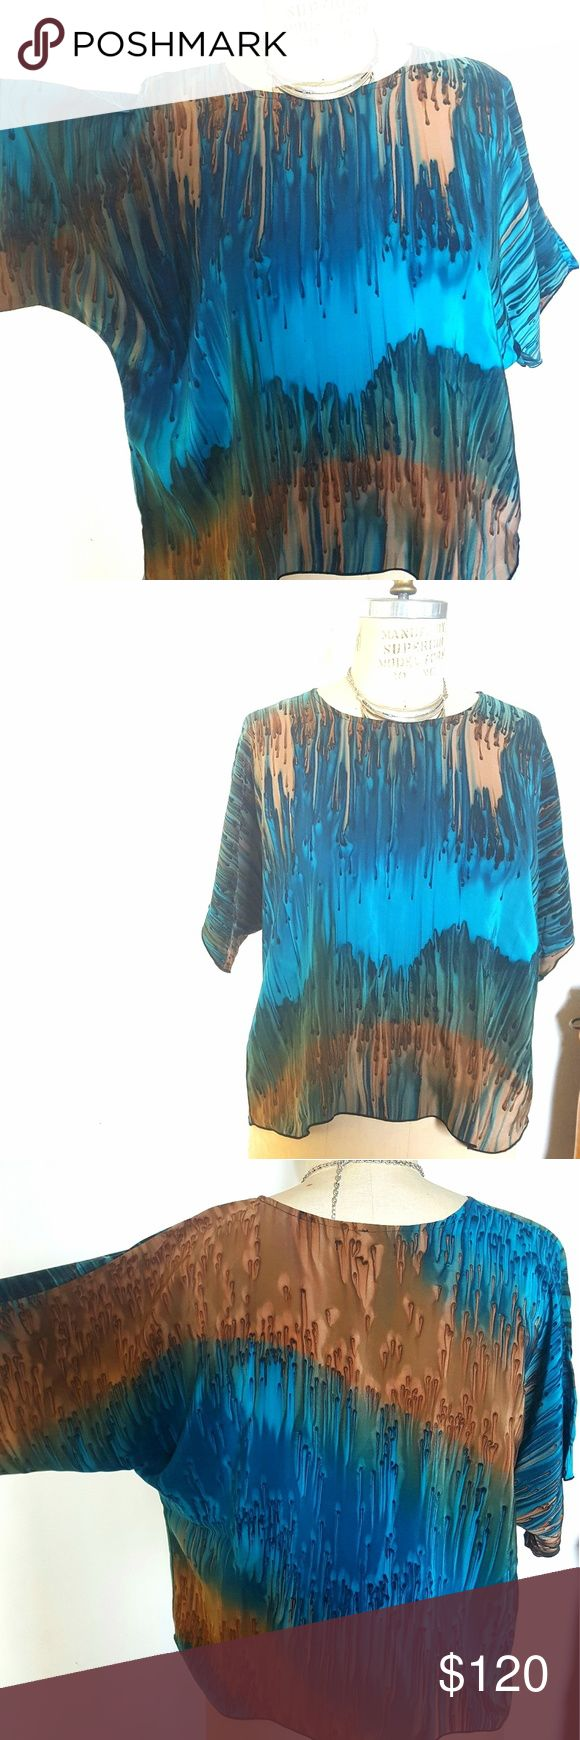 Vintage Dip Dyed Vivid Silk Blouse, Sz M Stunning, vivid hand dyed silk blouse in a size medium.  Velvety soft, the hi-lo cut makes this top a go-to for the holiday season.  Petite batwing sleeves are flattering but can still go under a vest. ❤ Never worn, popping with hues of teal and mocha...a conversation piece and precious addition to any fashion lover's closet! Tops Blouses